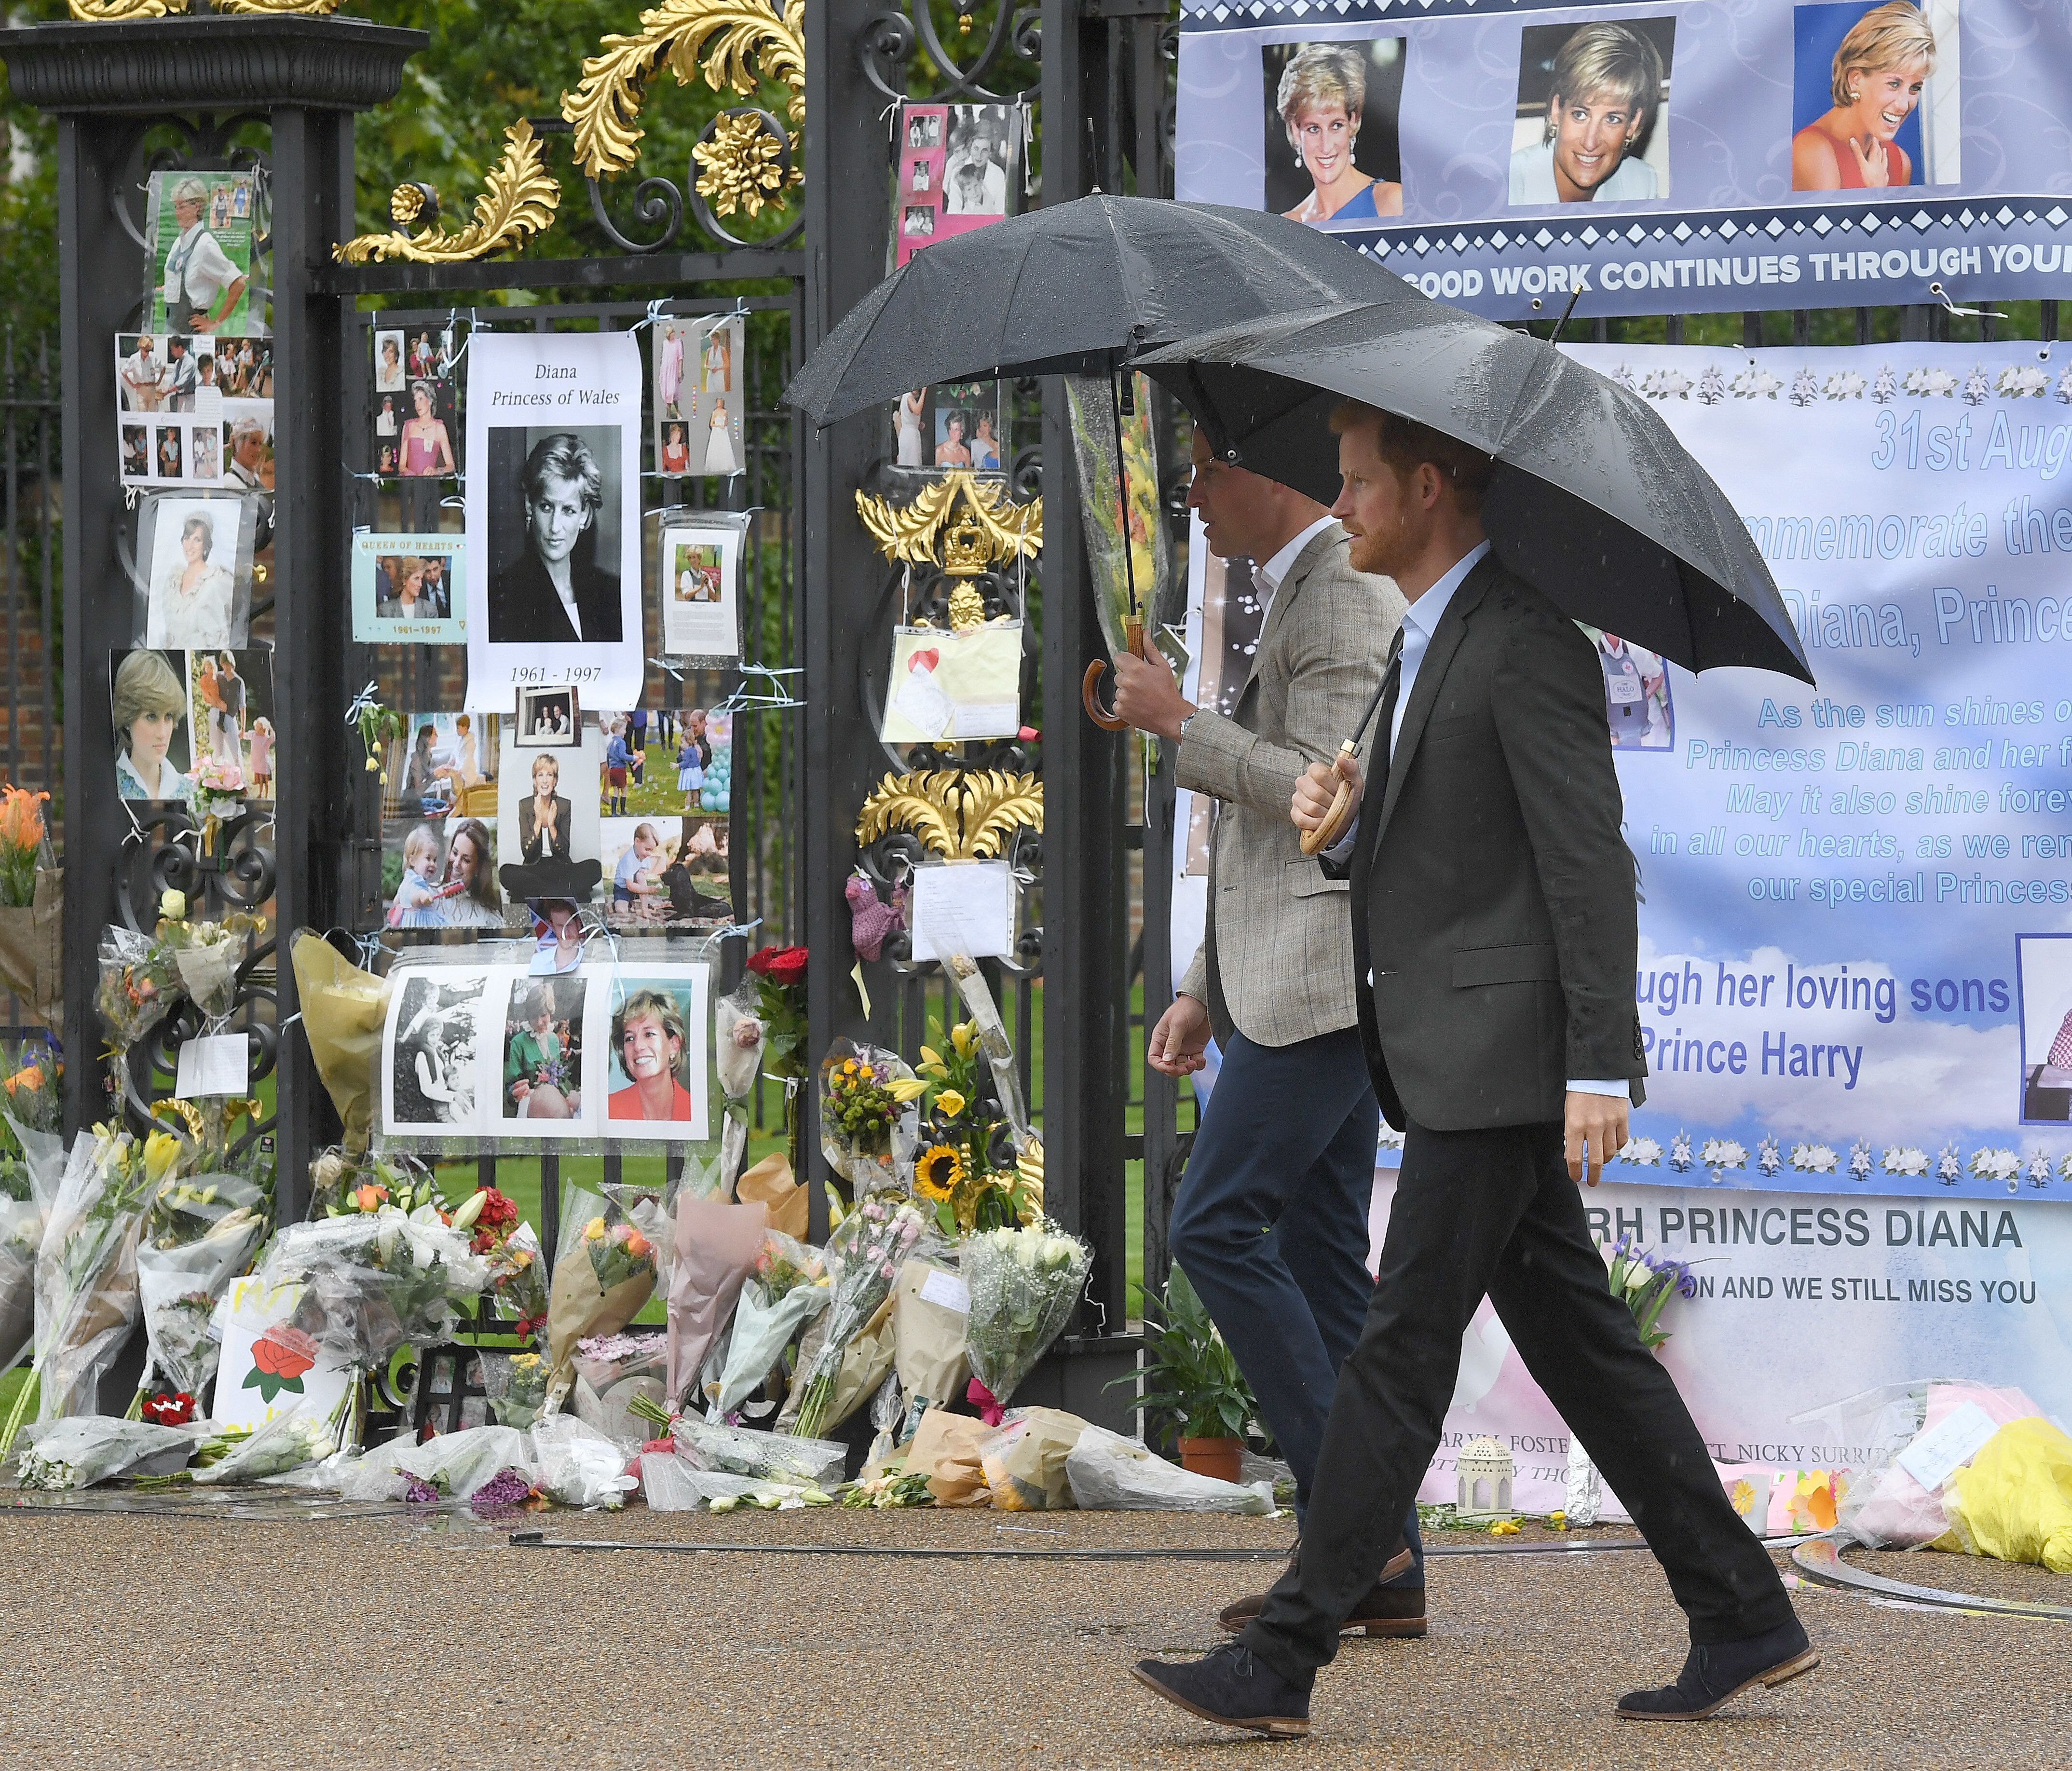 William and Harry look at tributes left by the public dedicated to their mother Princess Diana following their visit The White Garden, dedicated to the memory of Princess Diana, in Kensington Palace on Aug. 30, 2017.